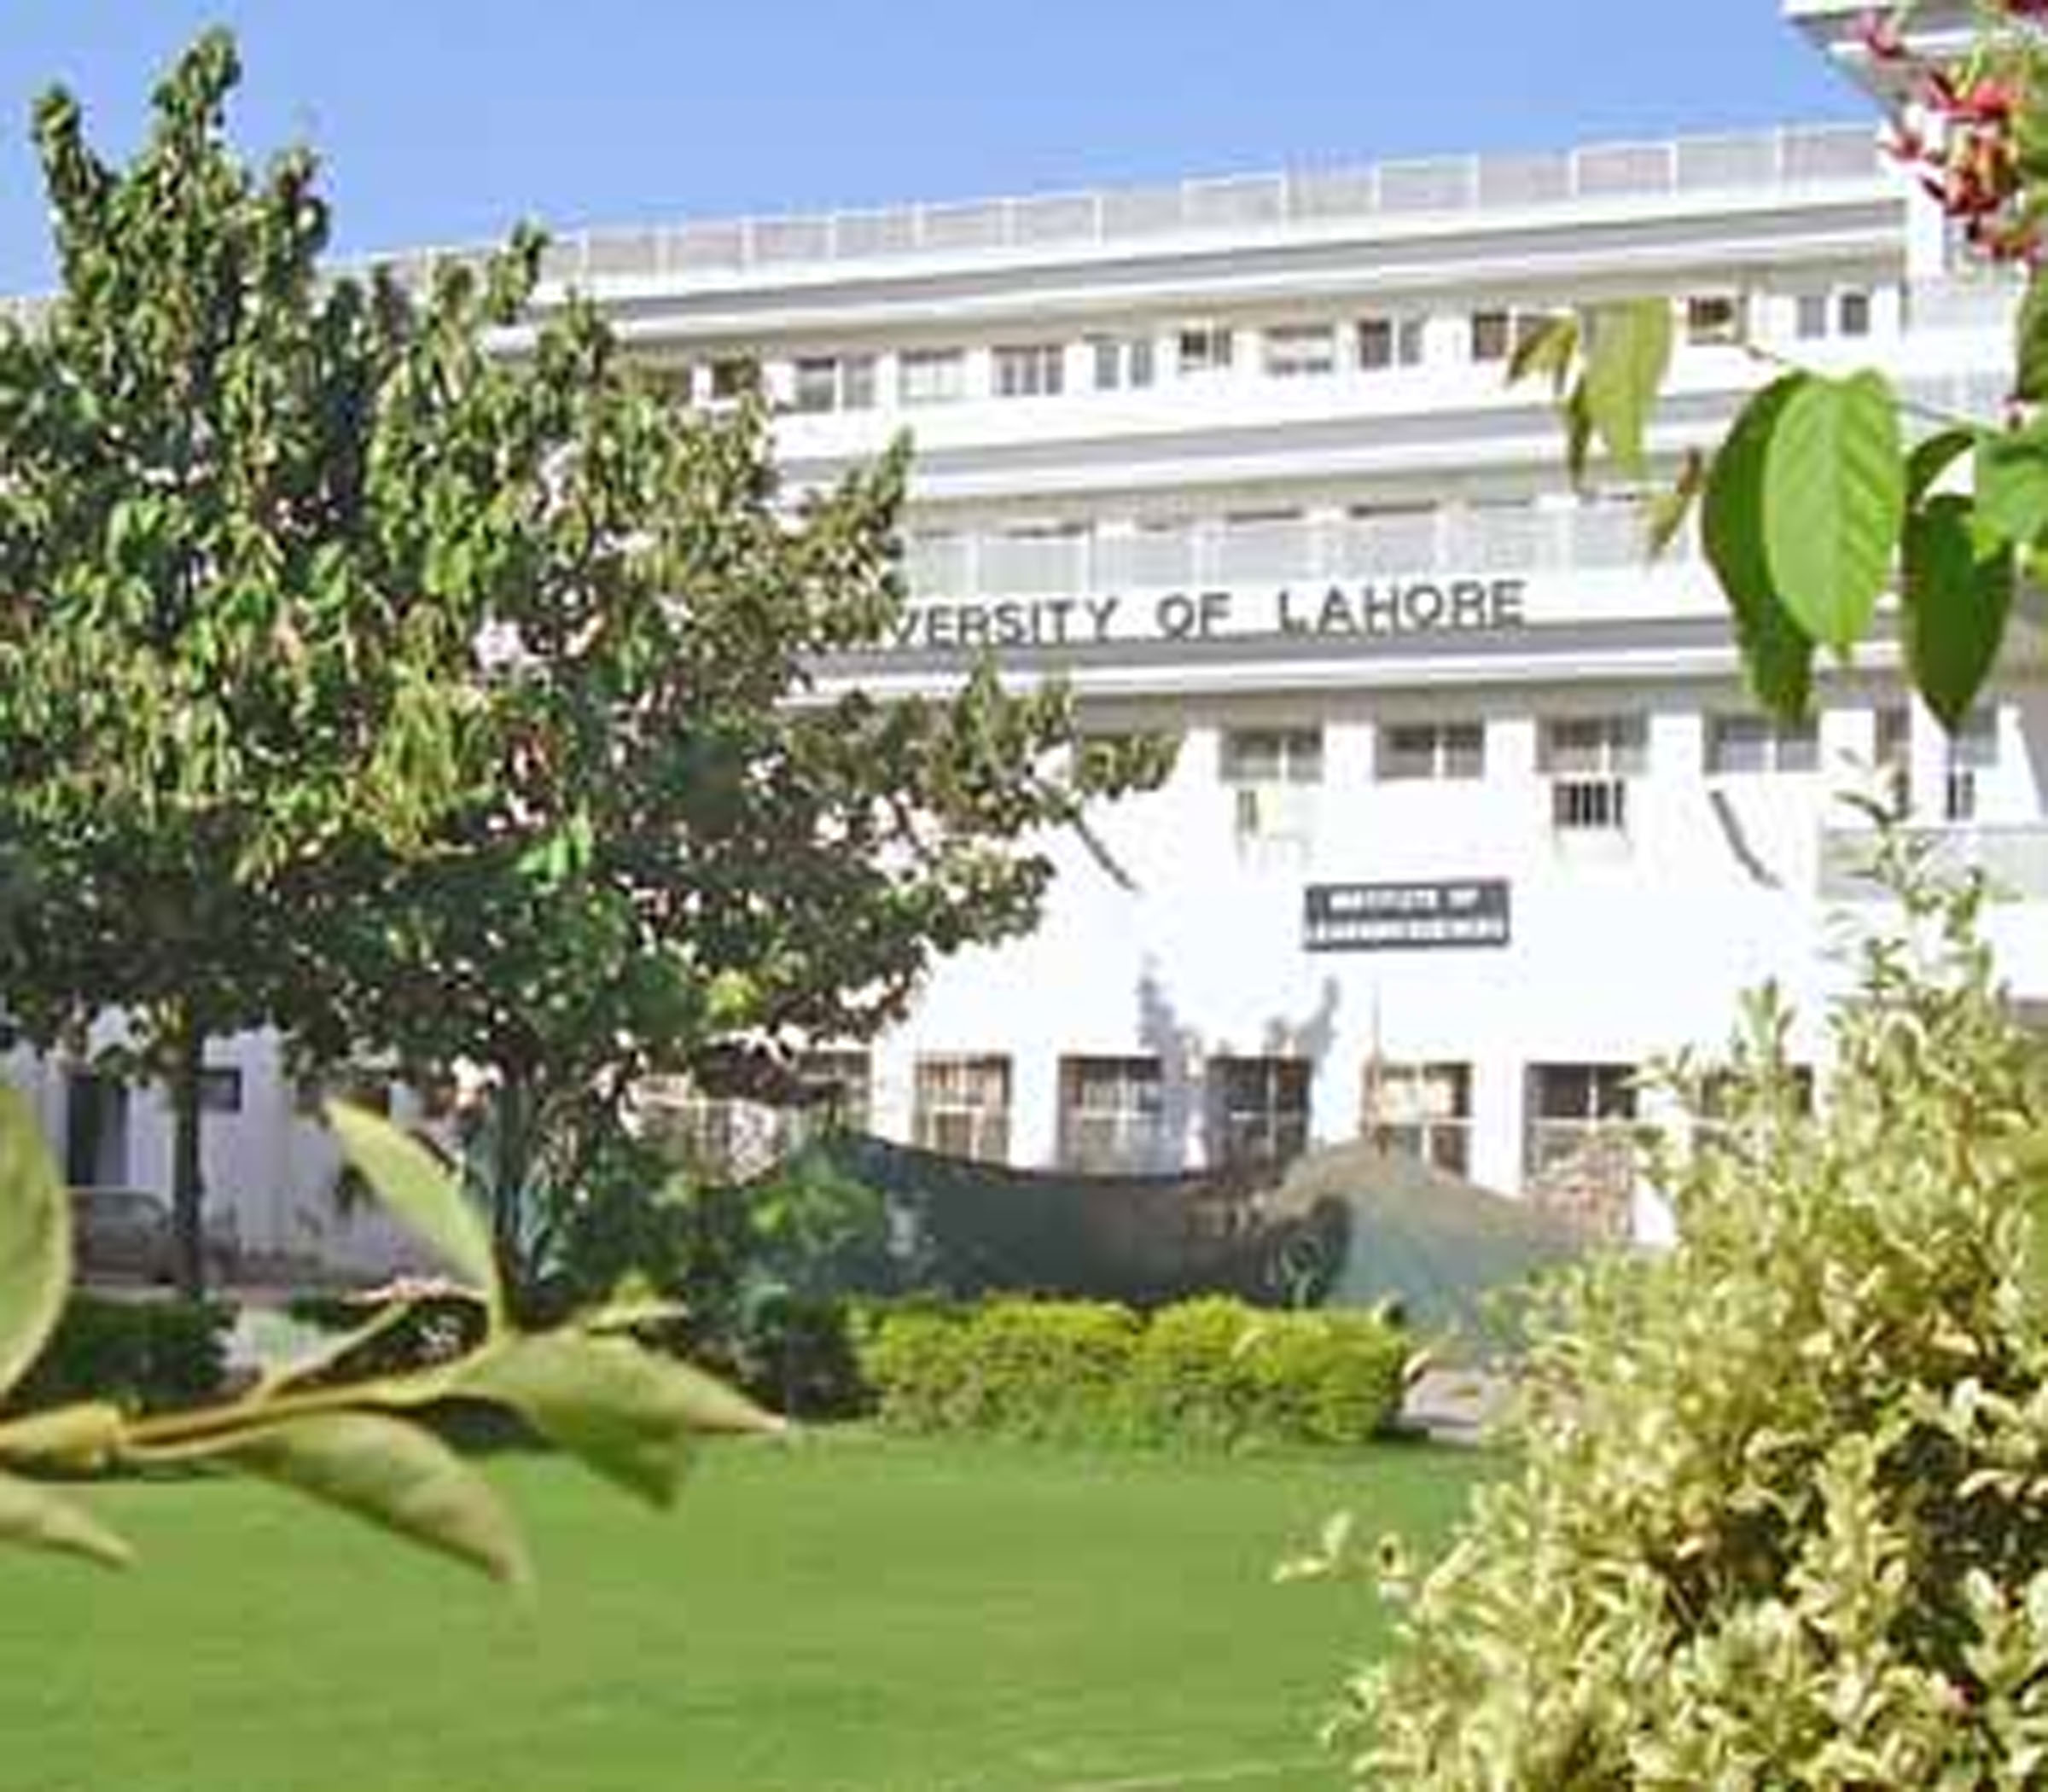 University of Lahore Admission 2019 Islamabad Campus Last date to Apply